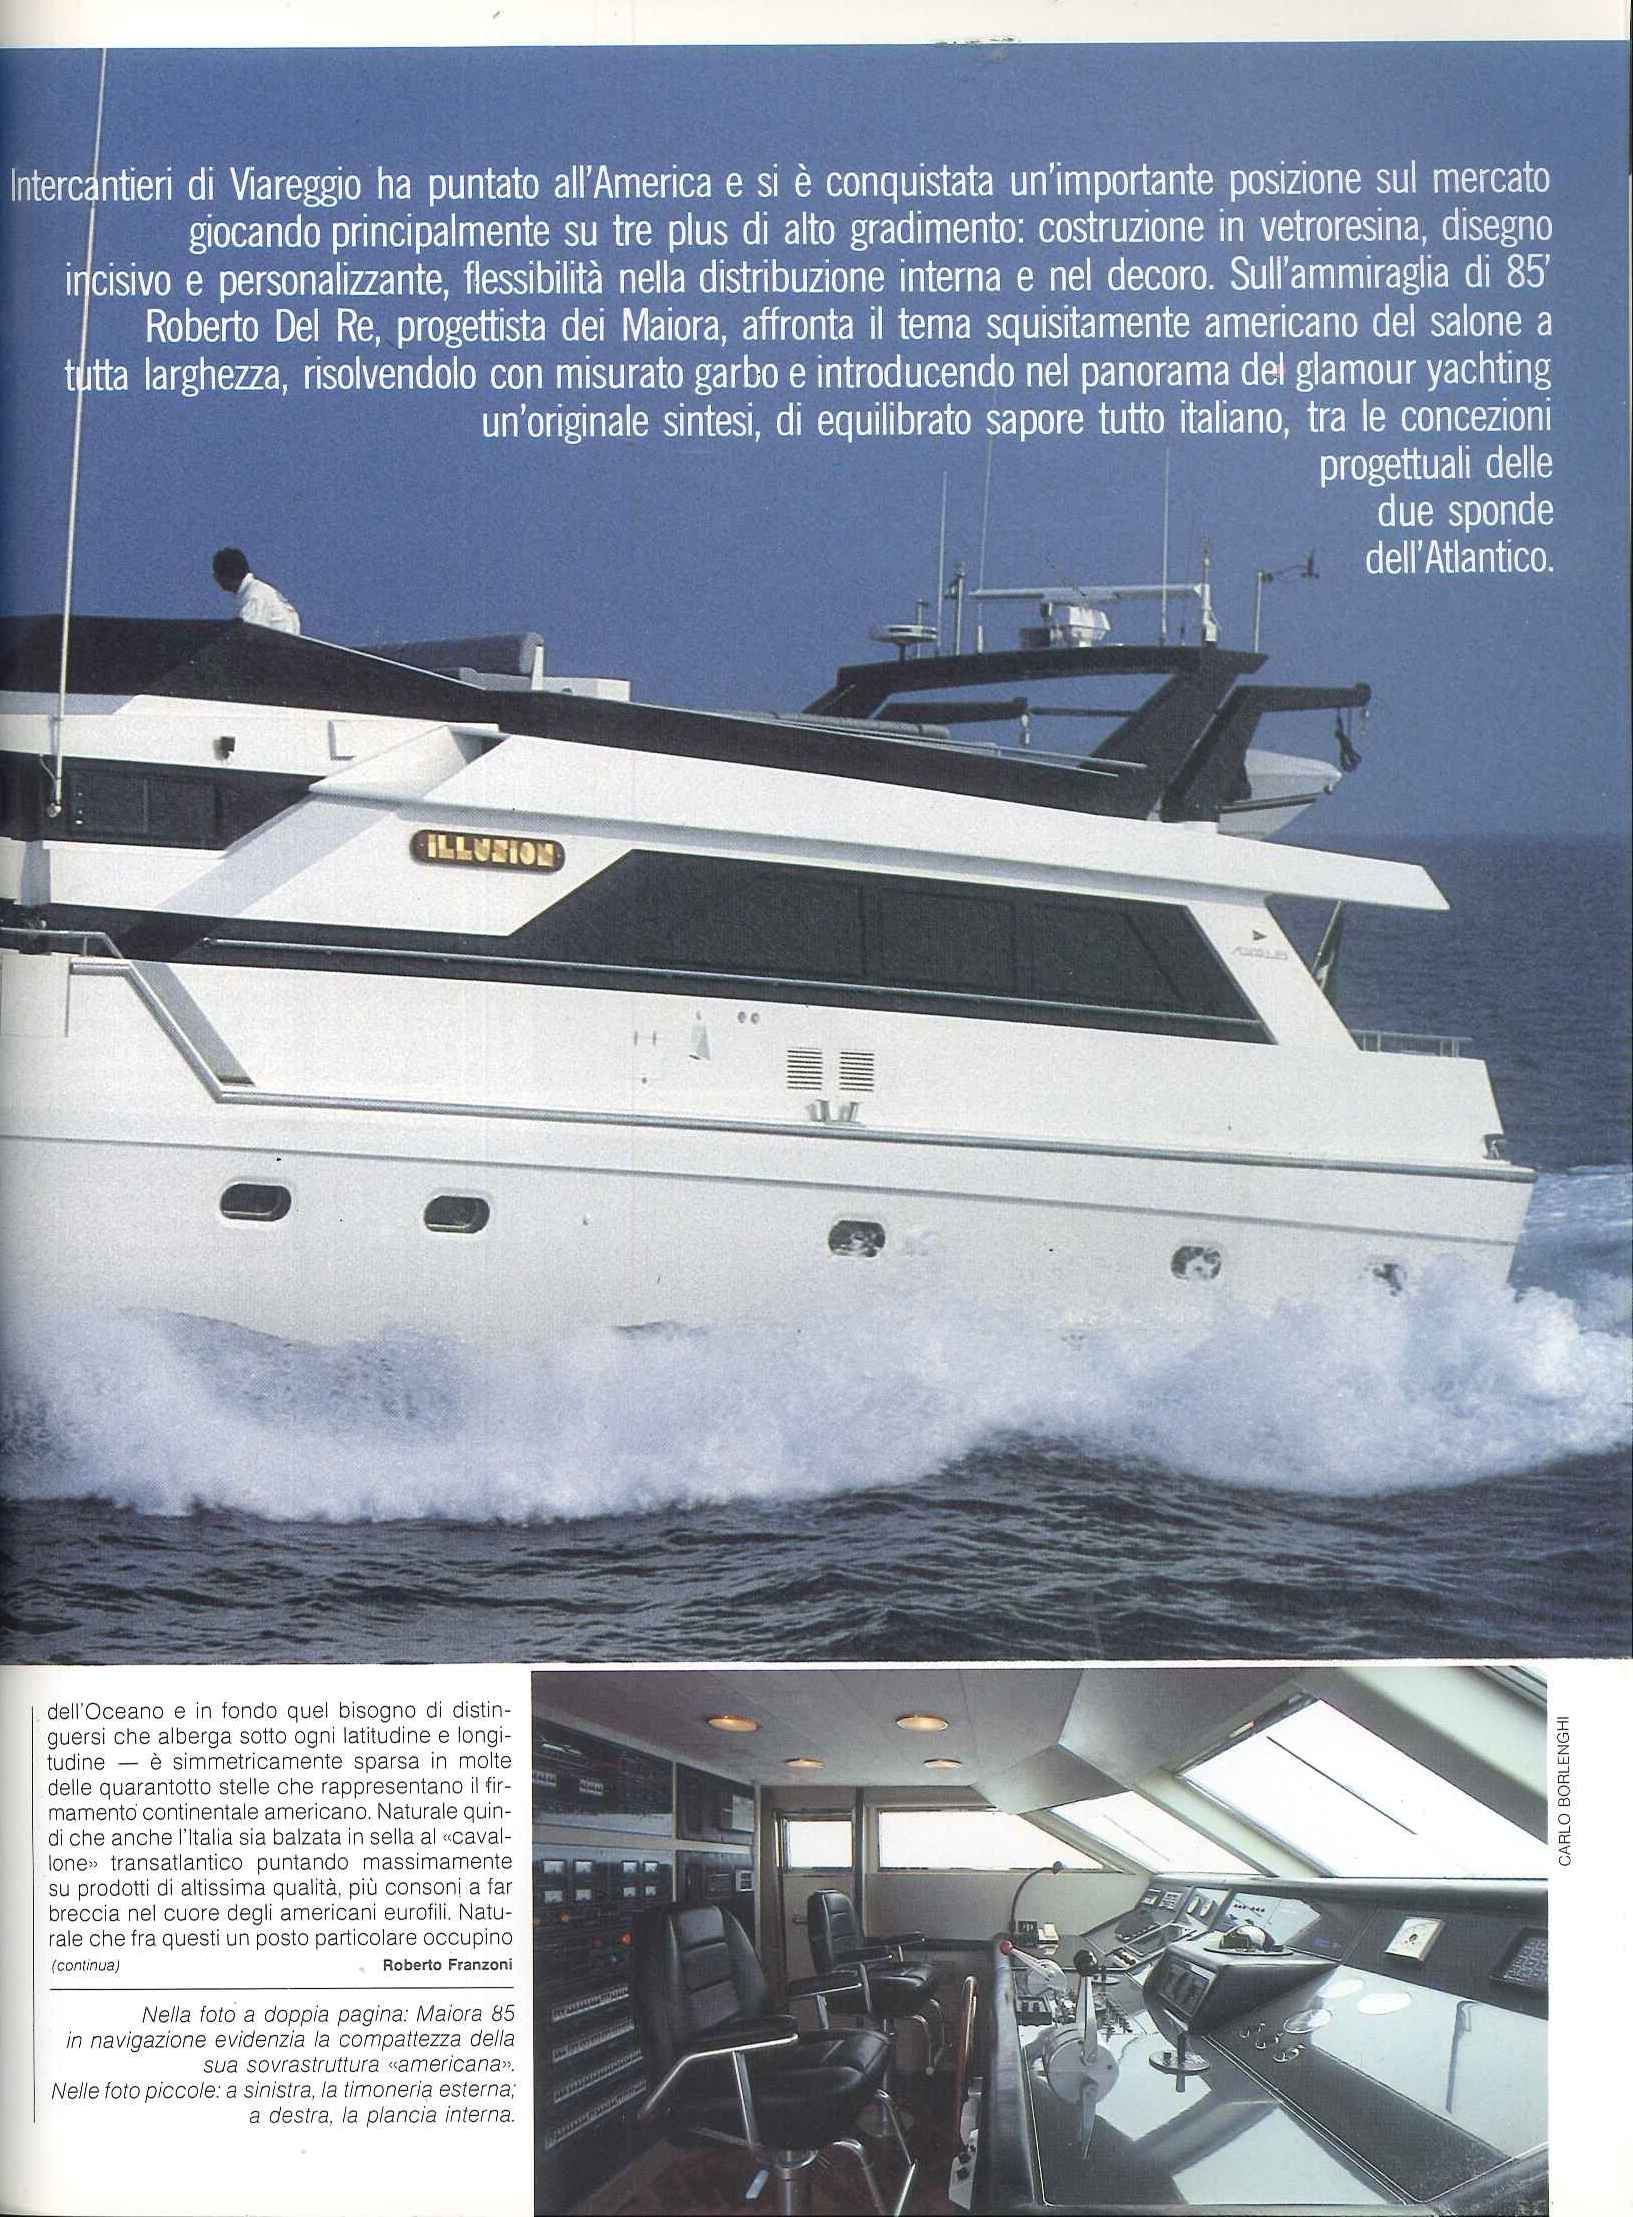 1986 09 PRESS MAIORA 85 Uomo Mare n° 101 (17).jpg